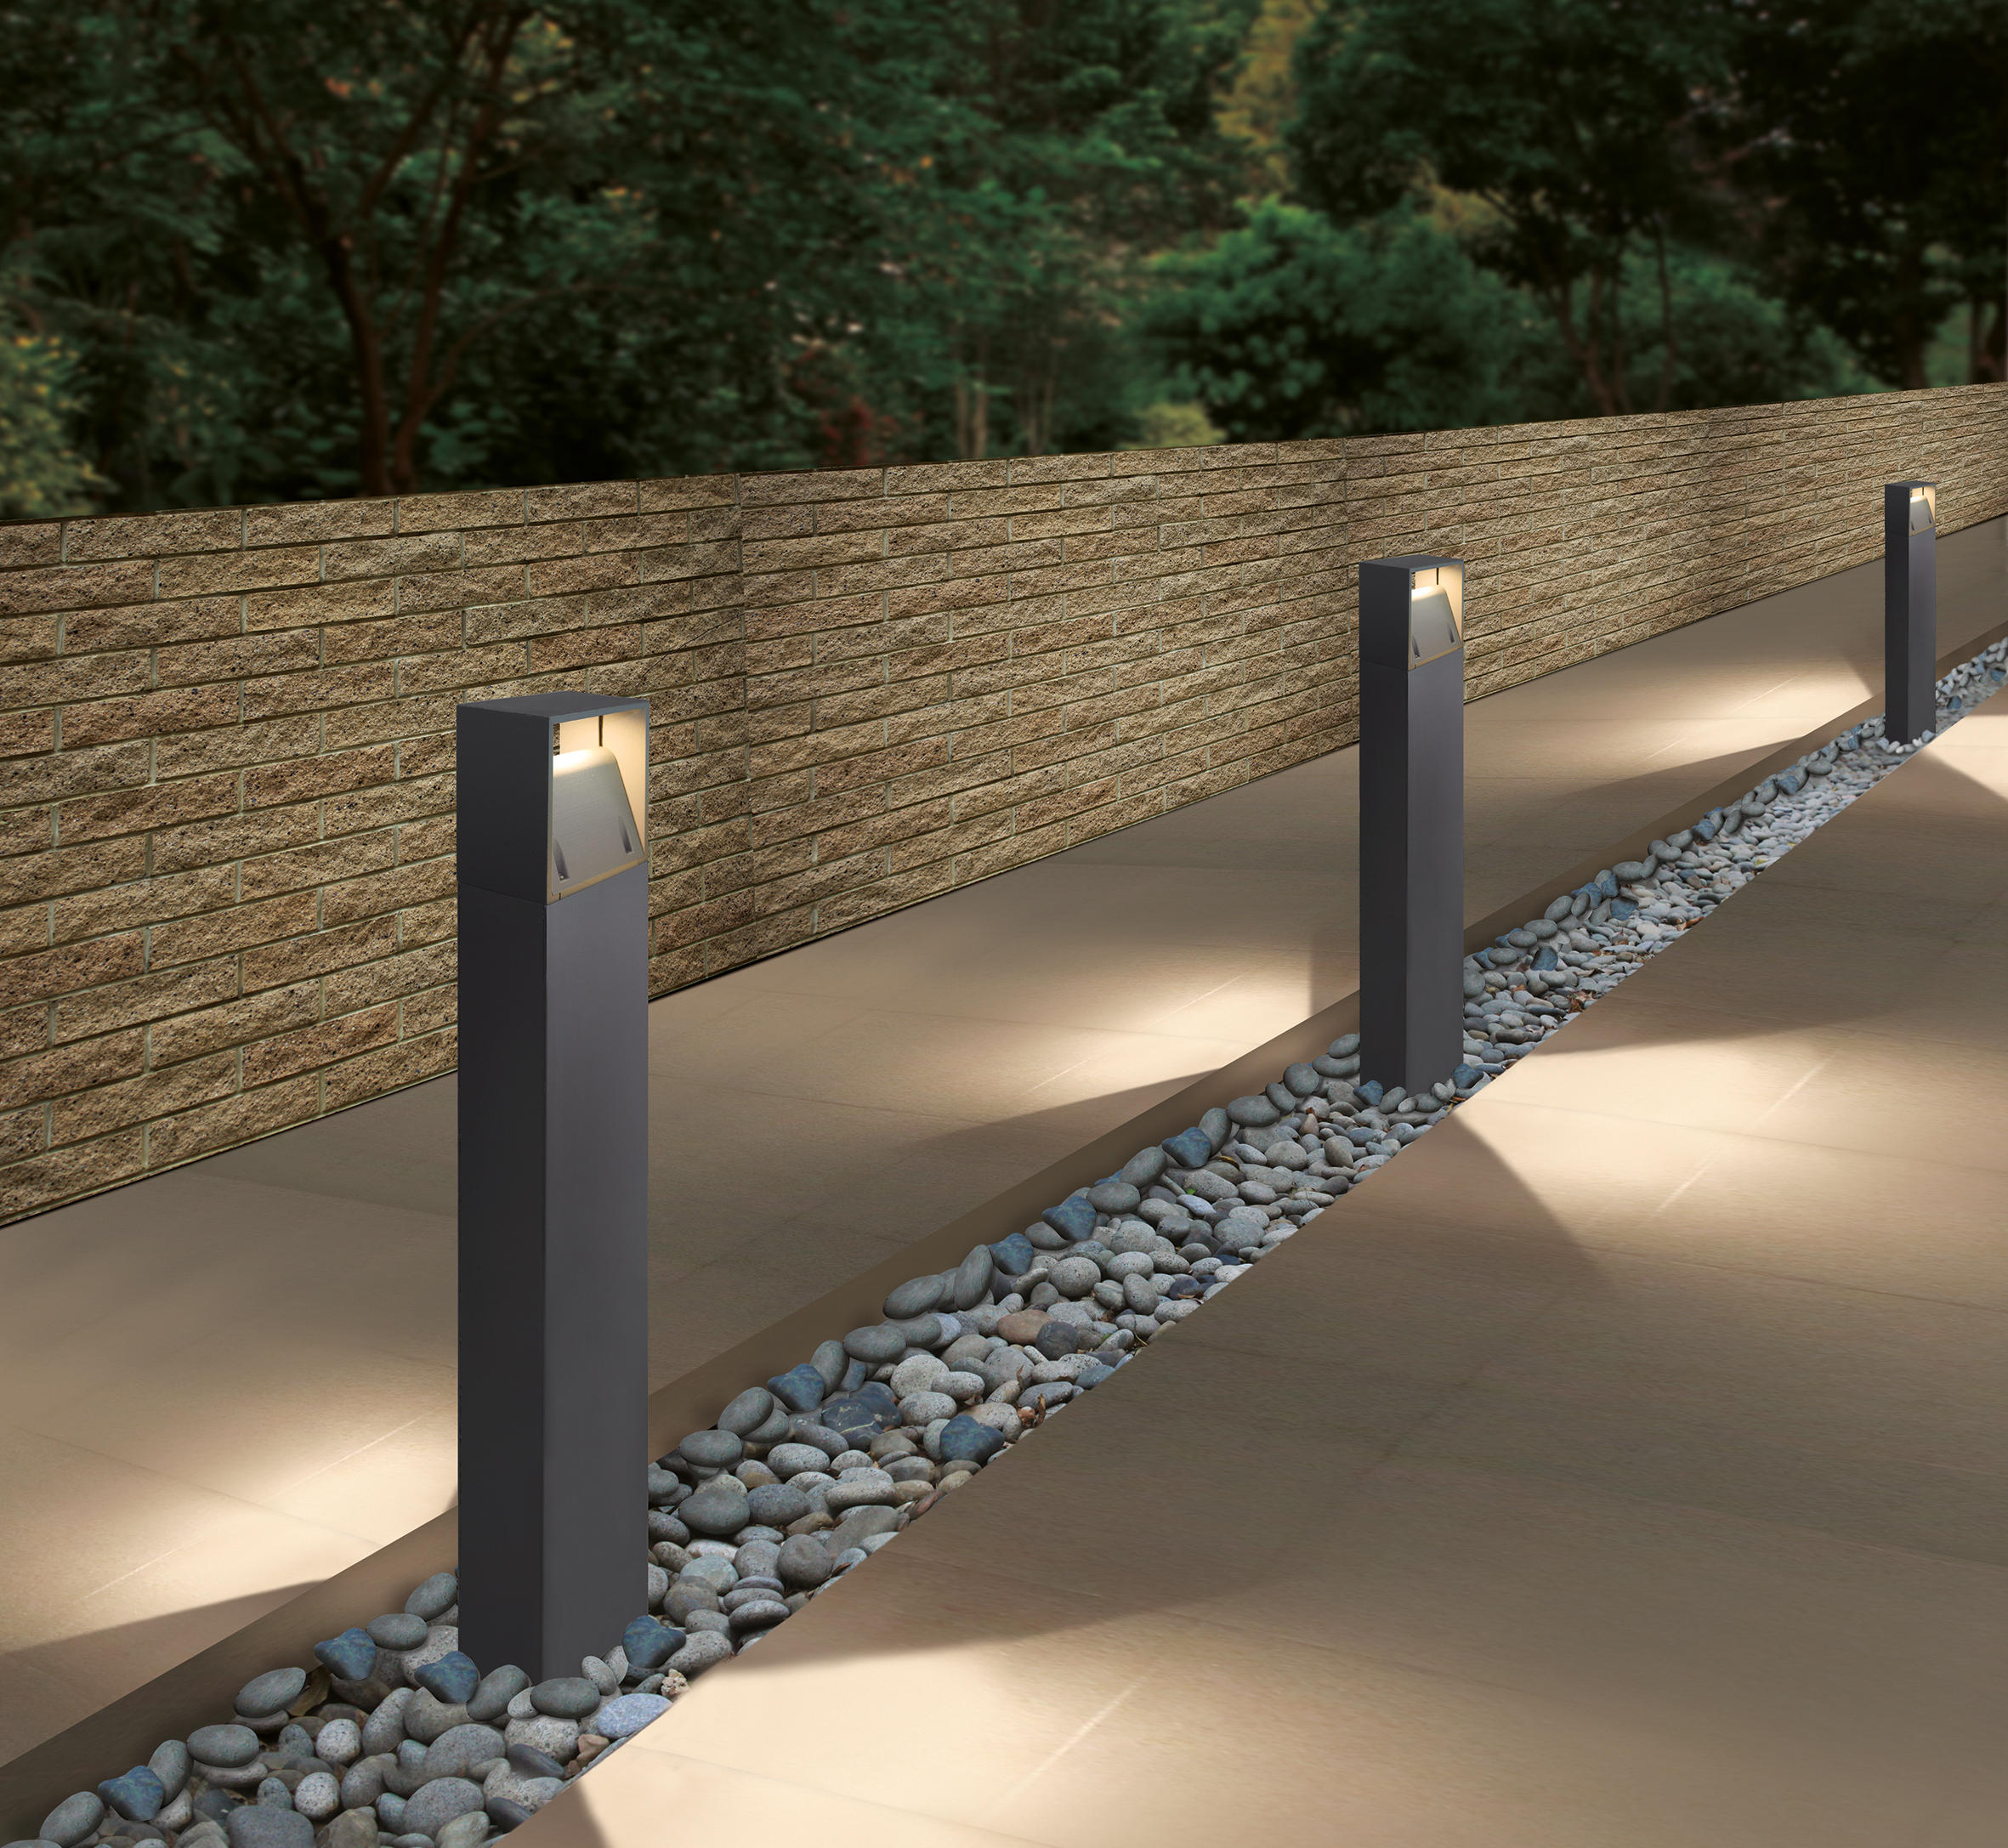 Lim led bollard luminaire bollard lights from unex for Luminaire outdoor